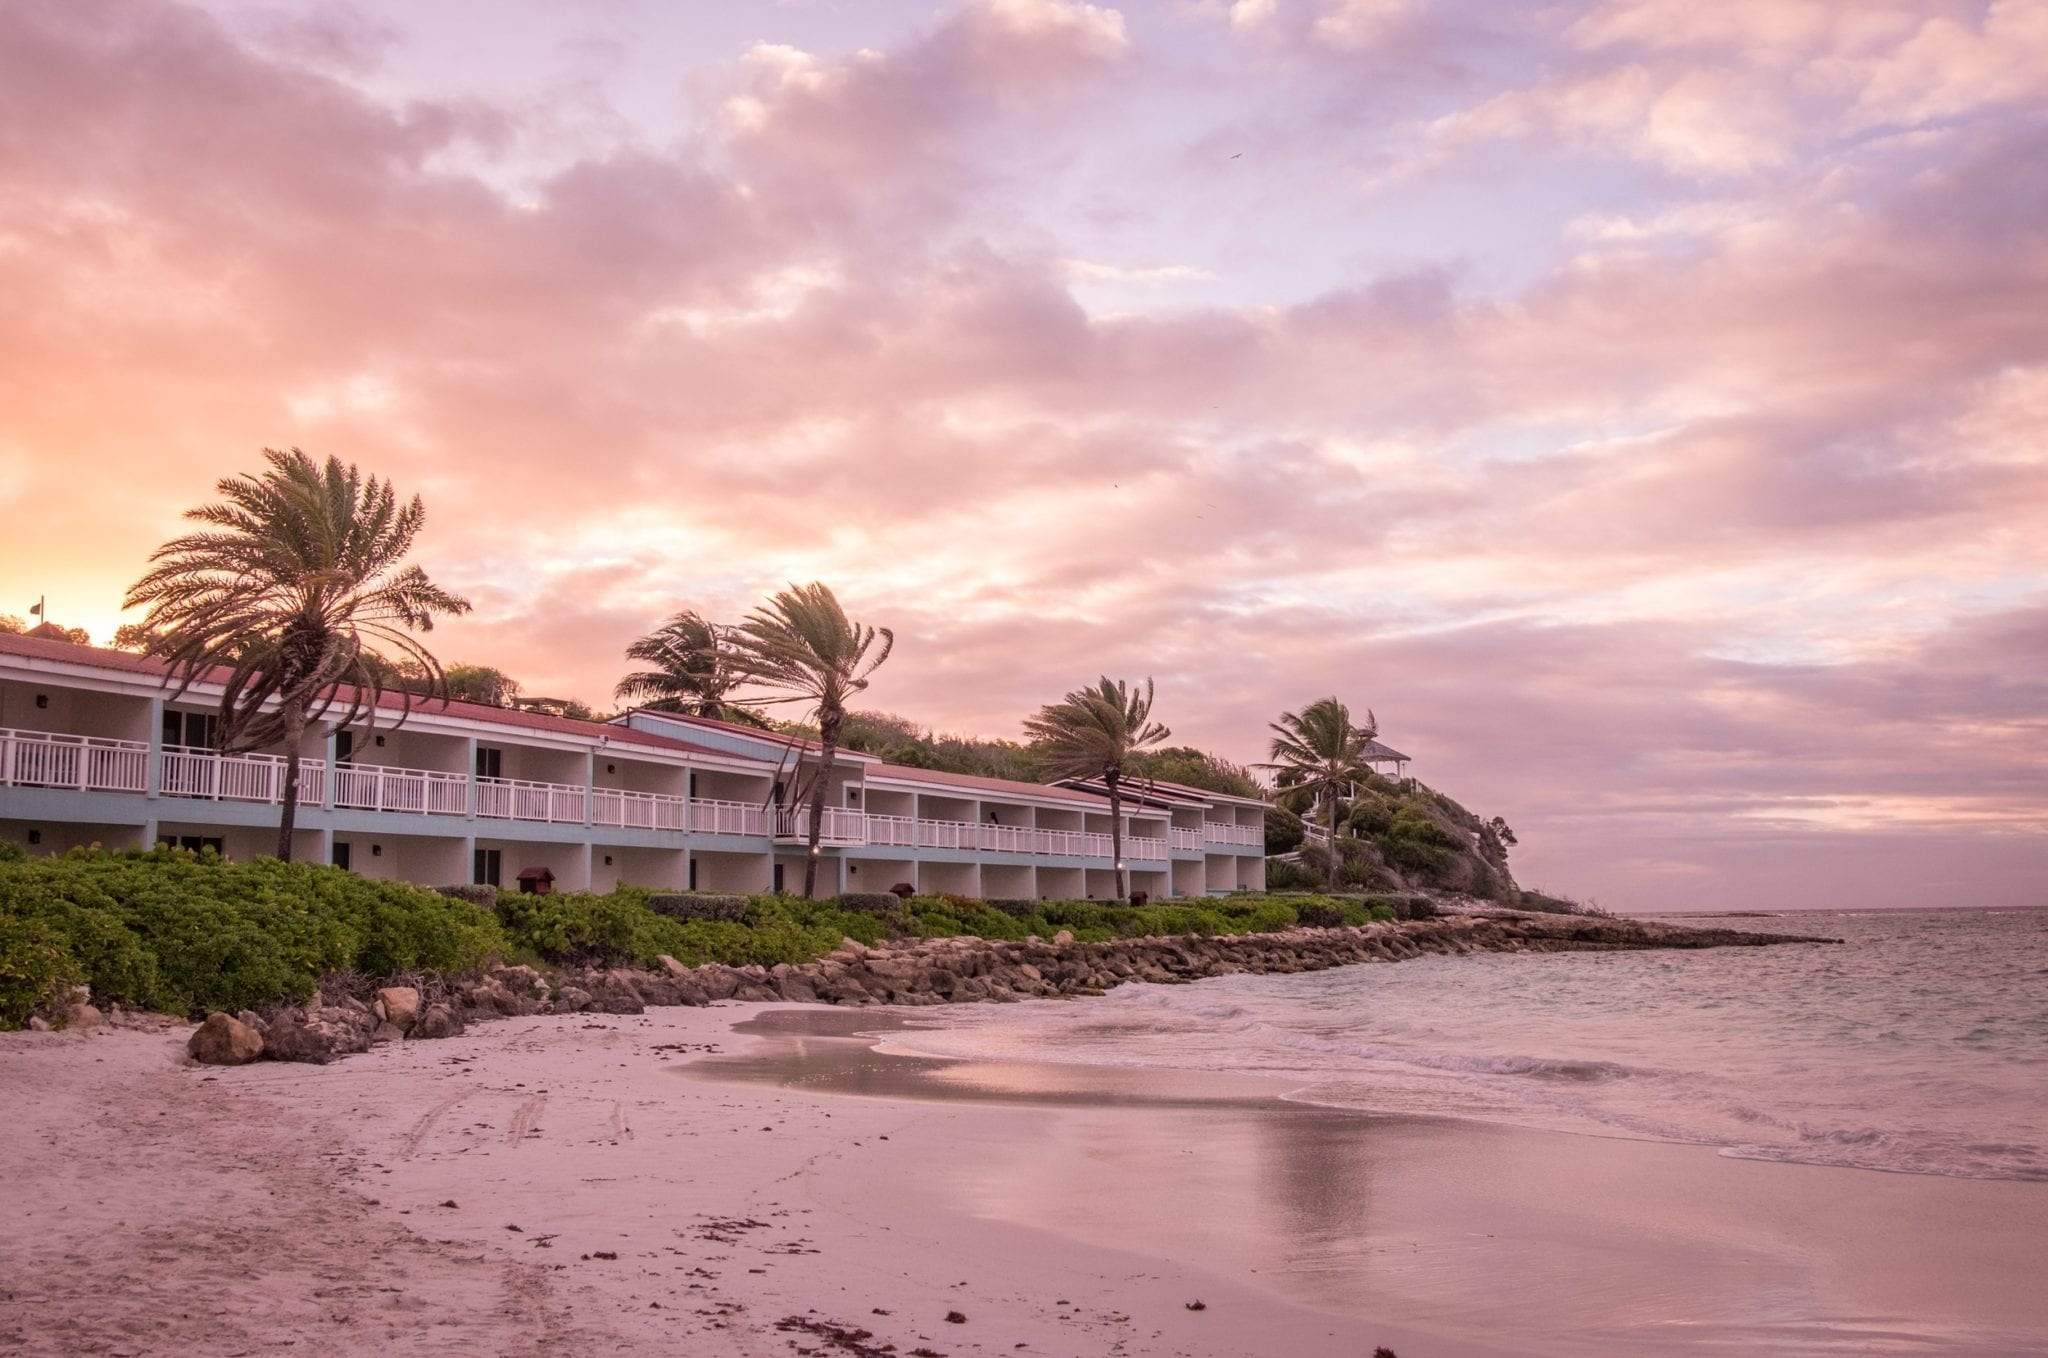 A pink sunset over a beach with white hotel rooms and palm trees in the background.